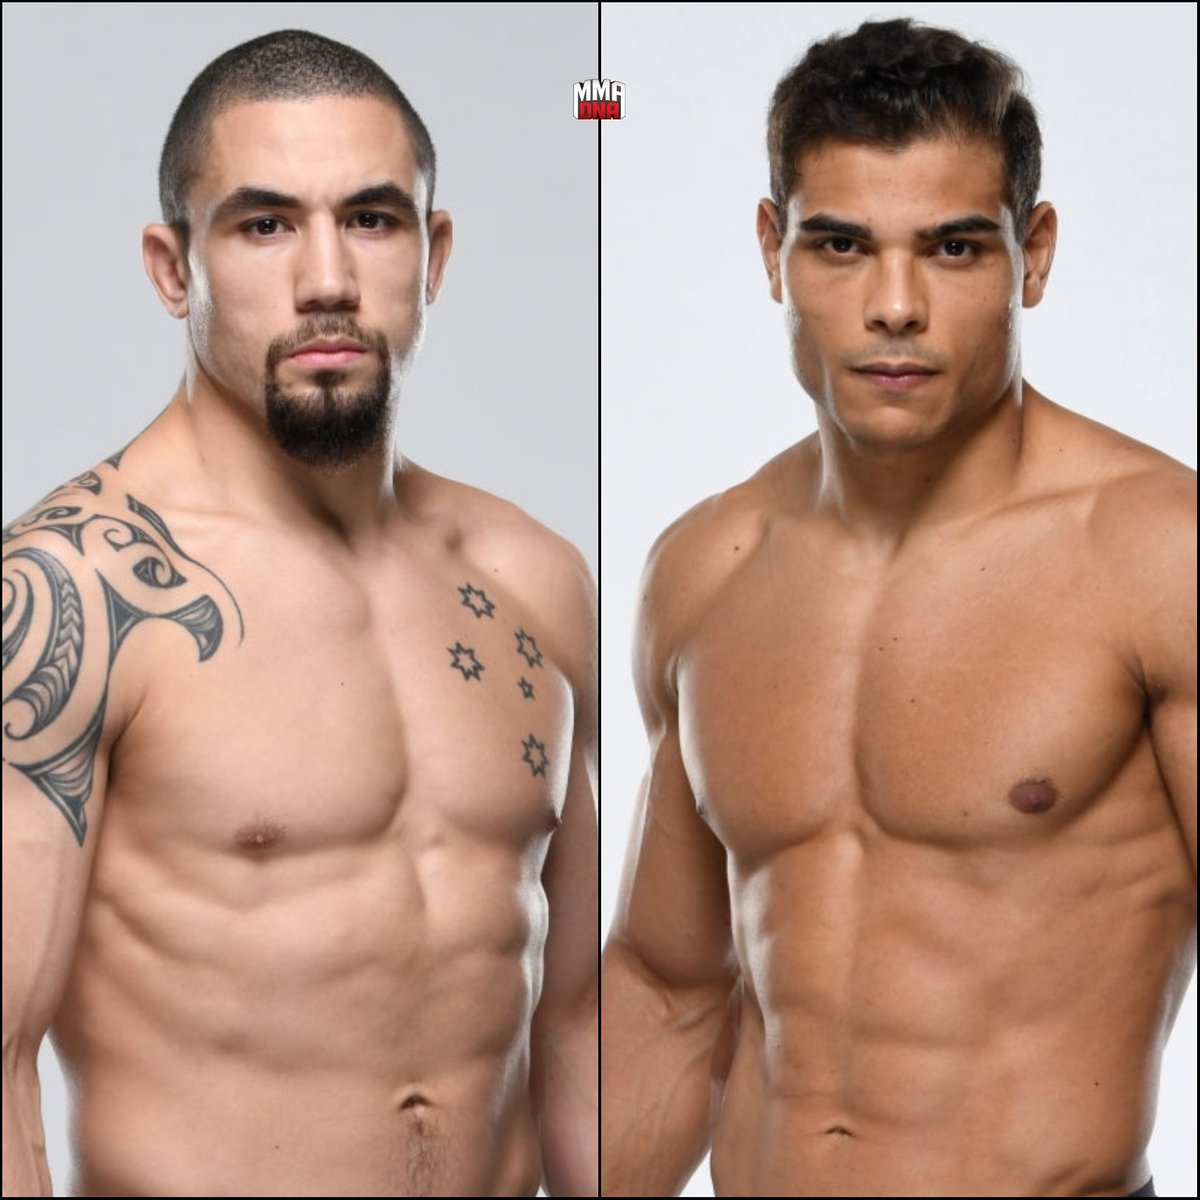 Robert Whittaker will fight Paulo Costa at UFC event on April 17th. (per @sherdogdotcom) #UFC #MMA #UFCESPN #MainEvent https://t.co/4wT6RO6EOi